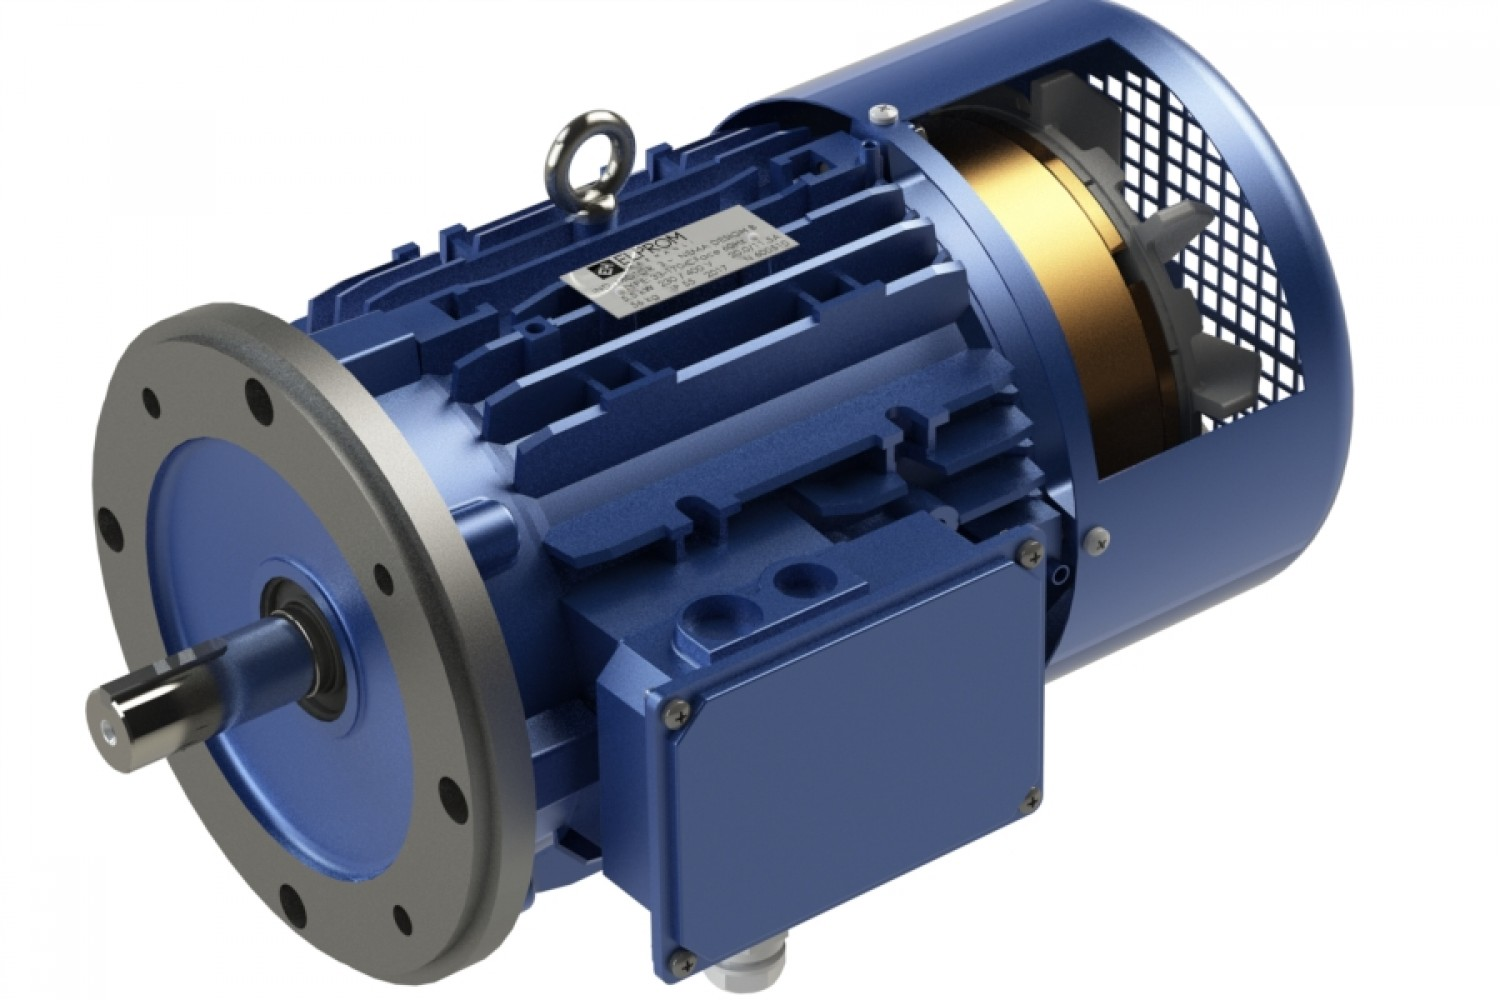 Three-phase NEMA motors